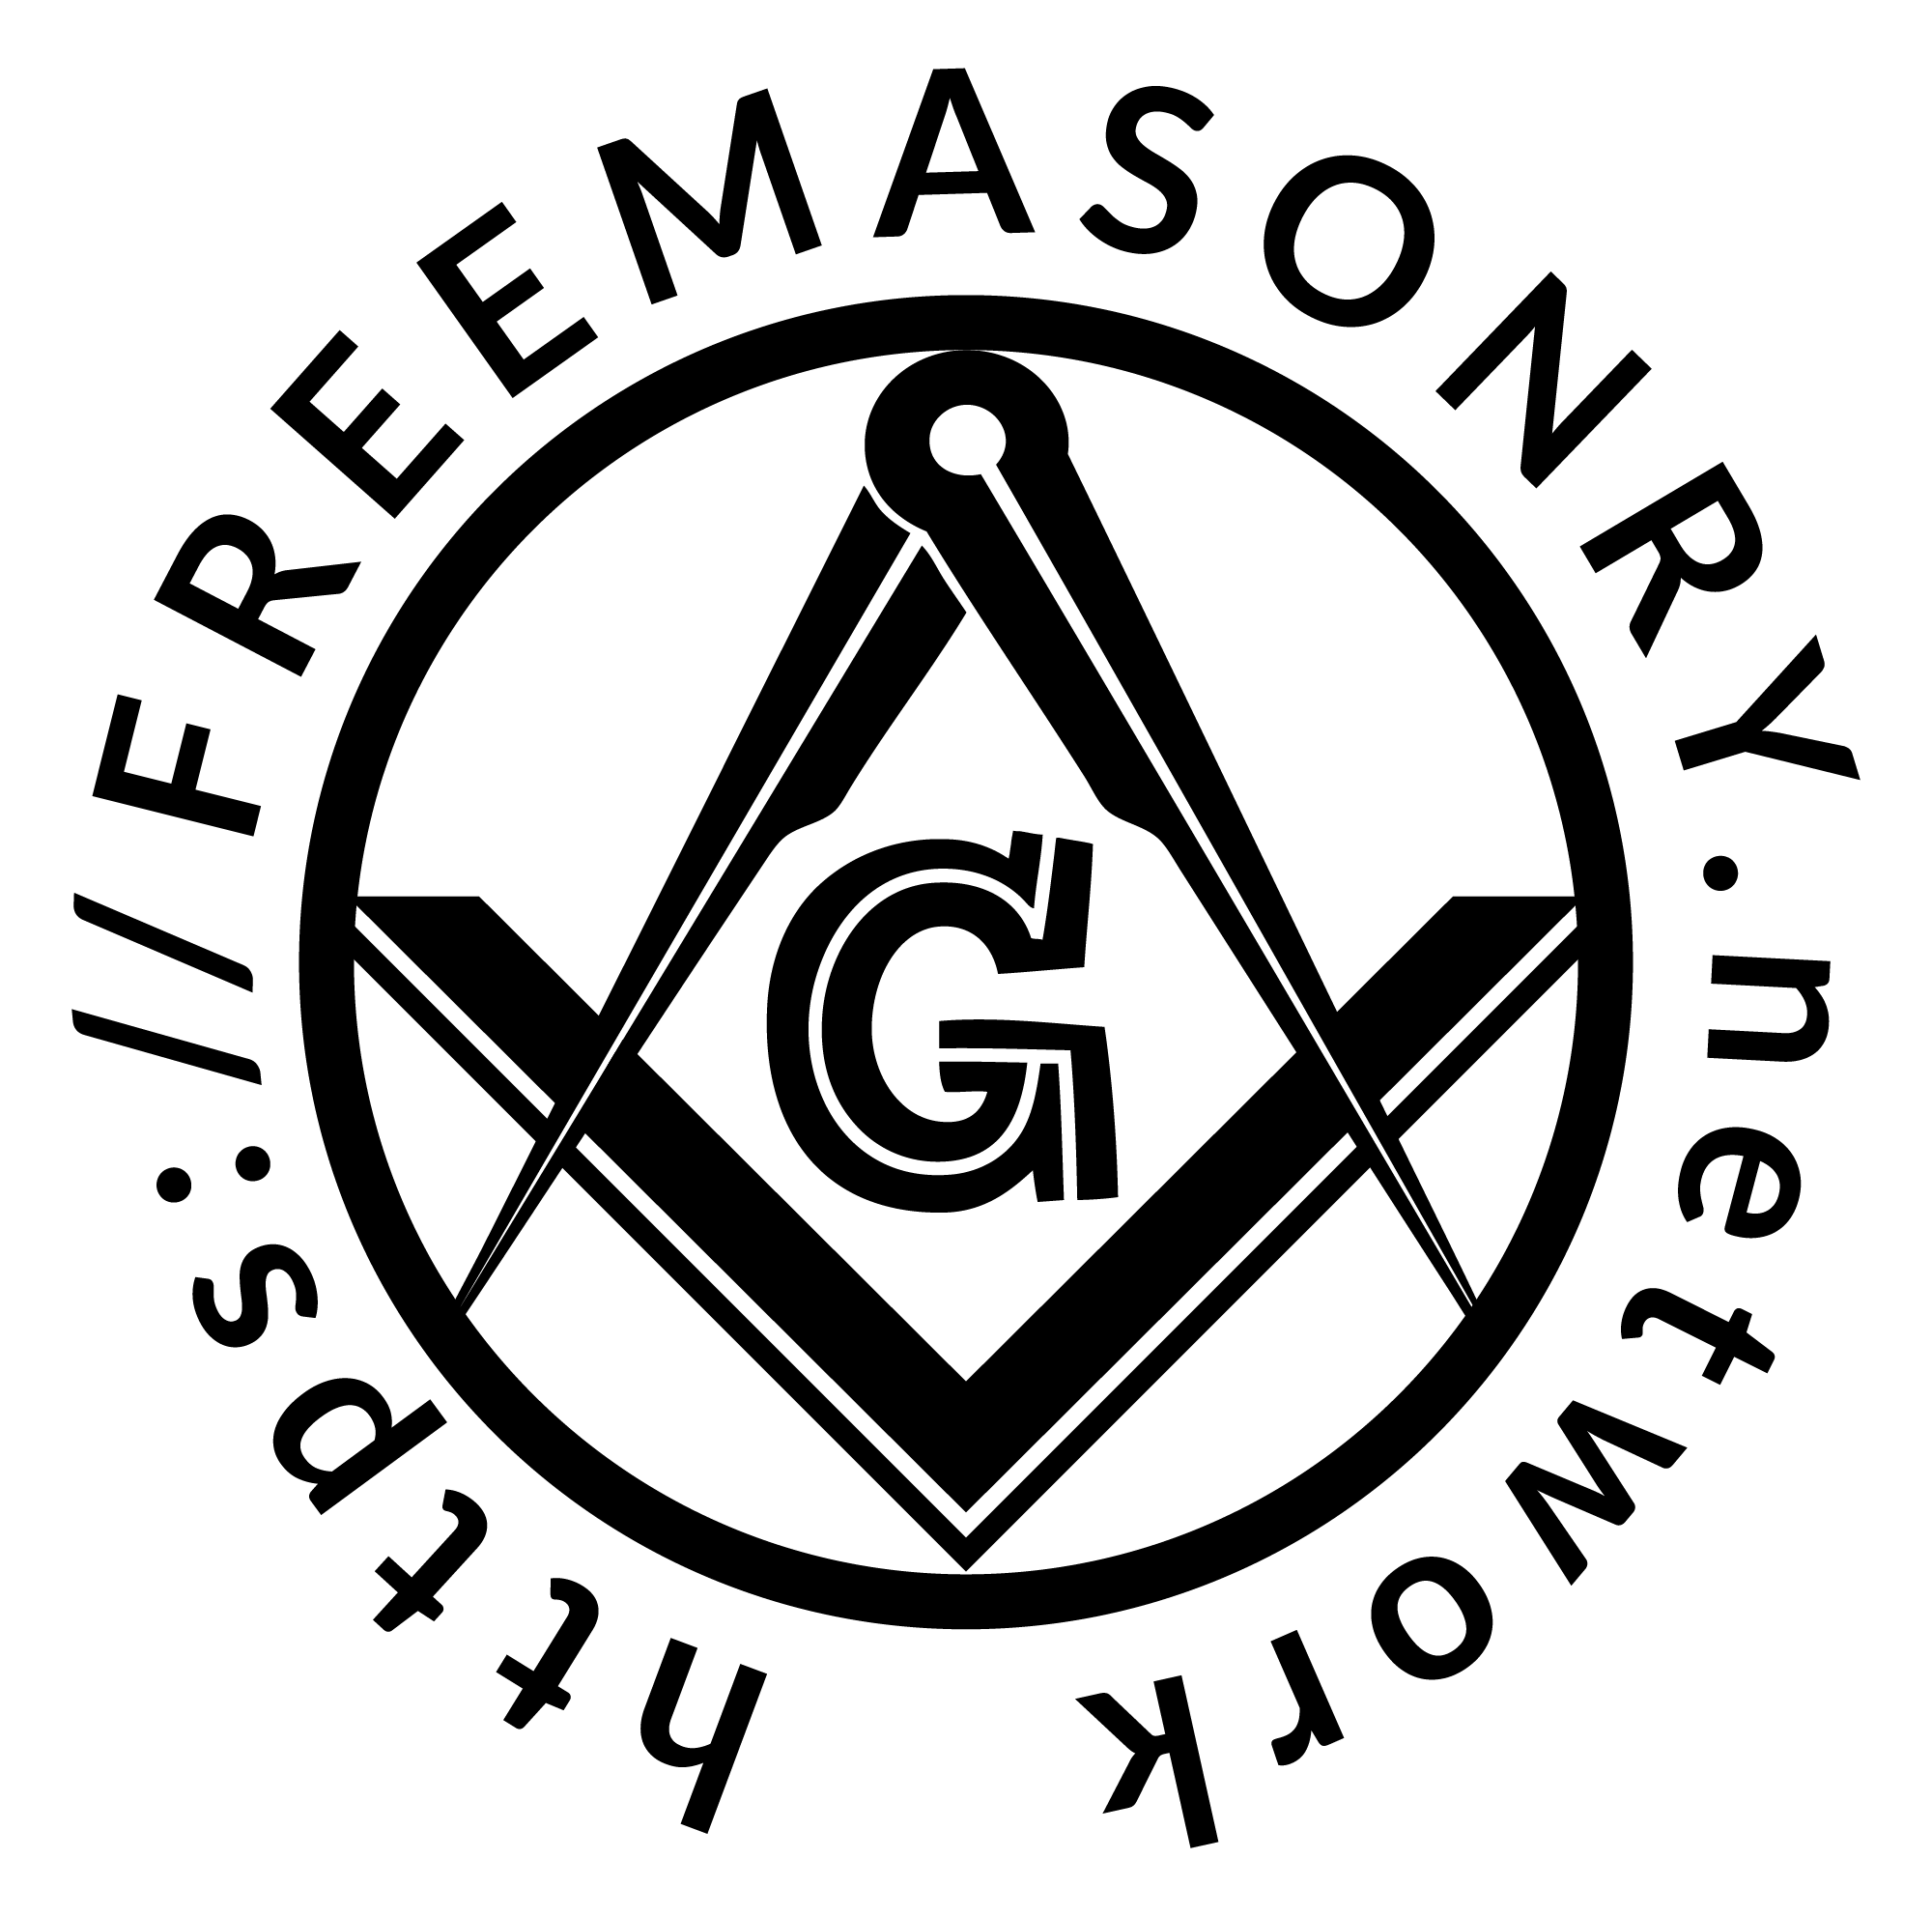 NEW INTEREST IN FREEMASONRY